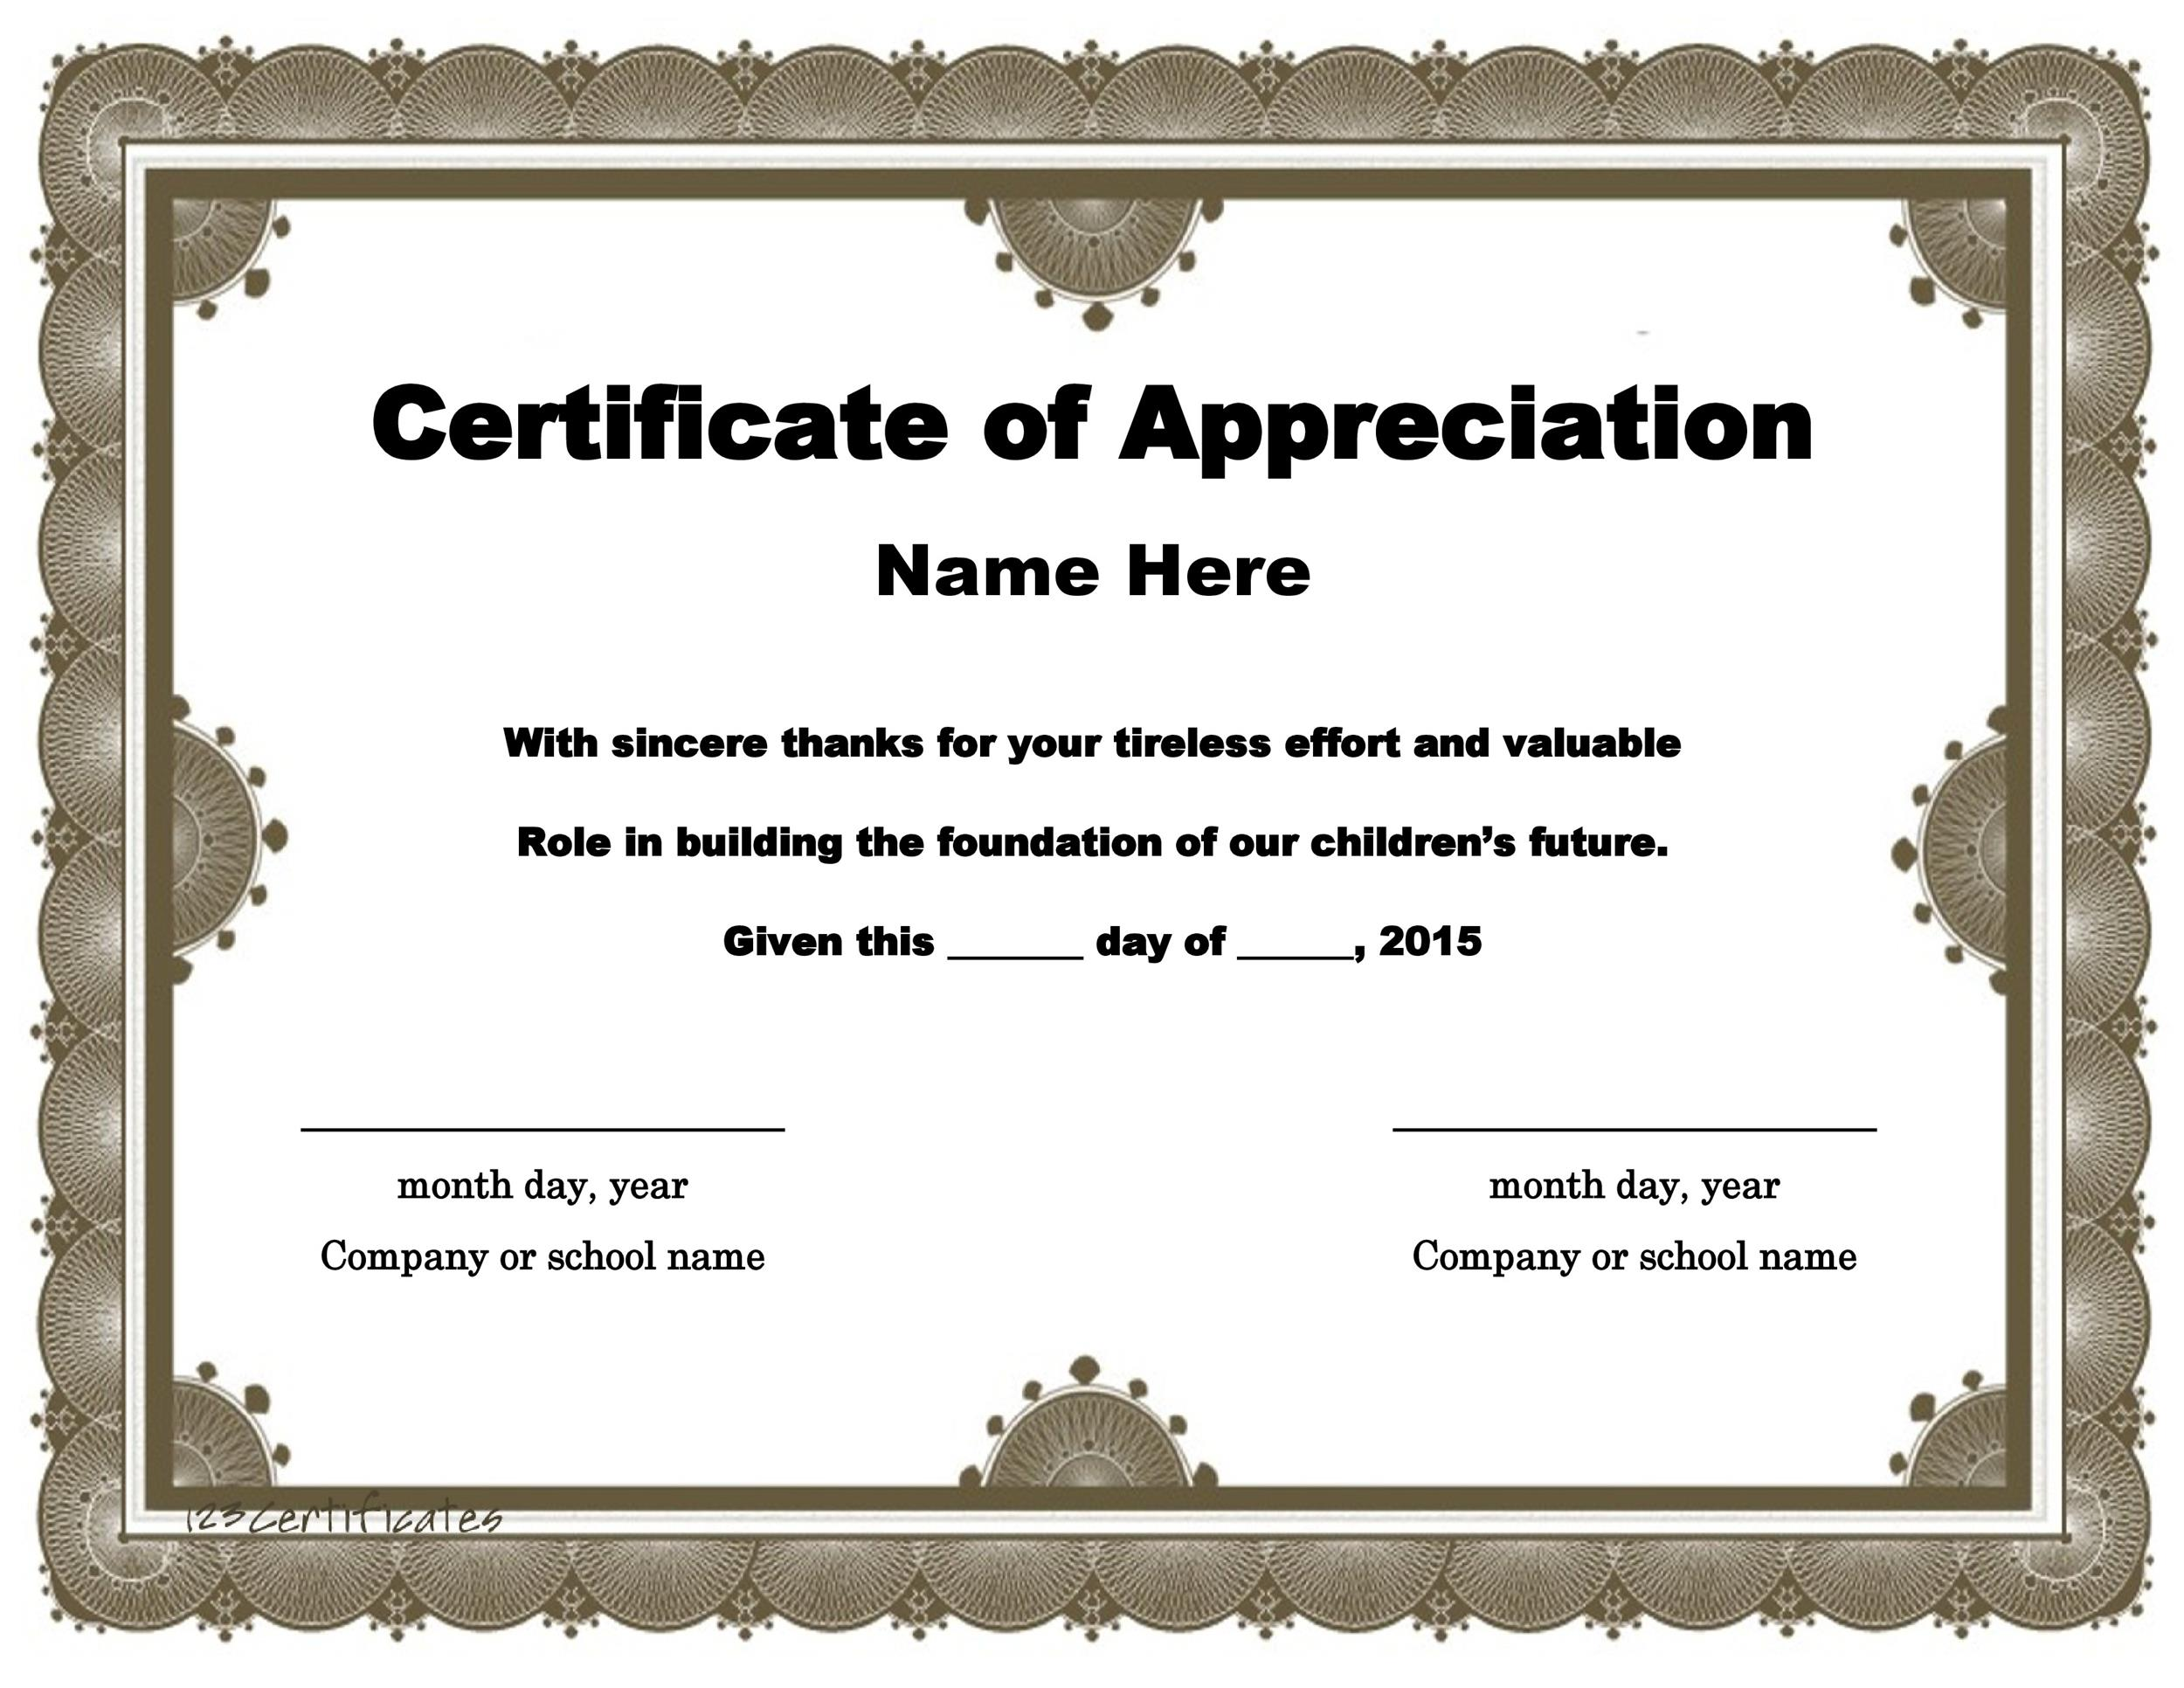 30 free certificate of appreciation templates and letters printable certificate of appreciation 03 yadclub Images